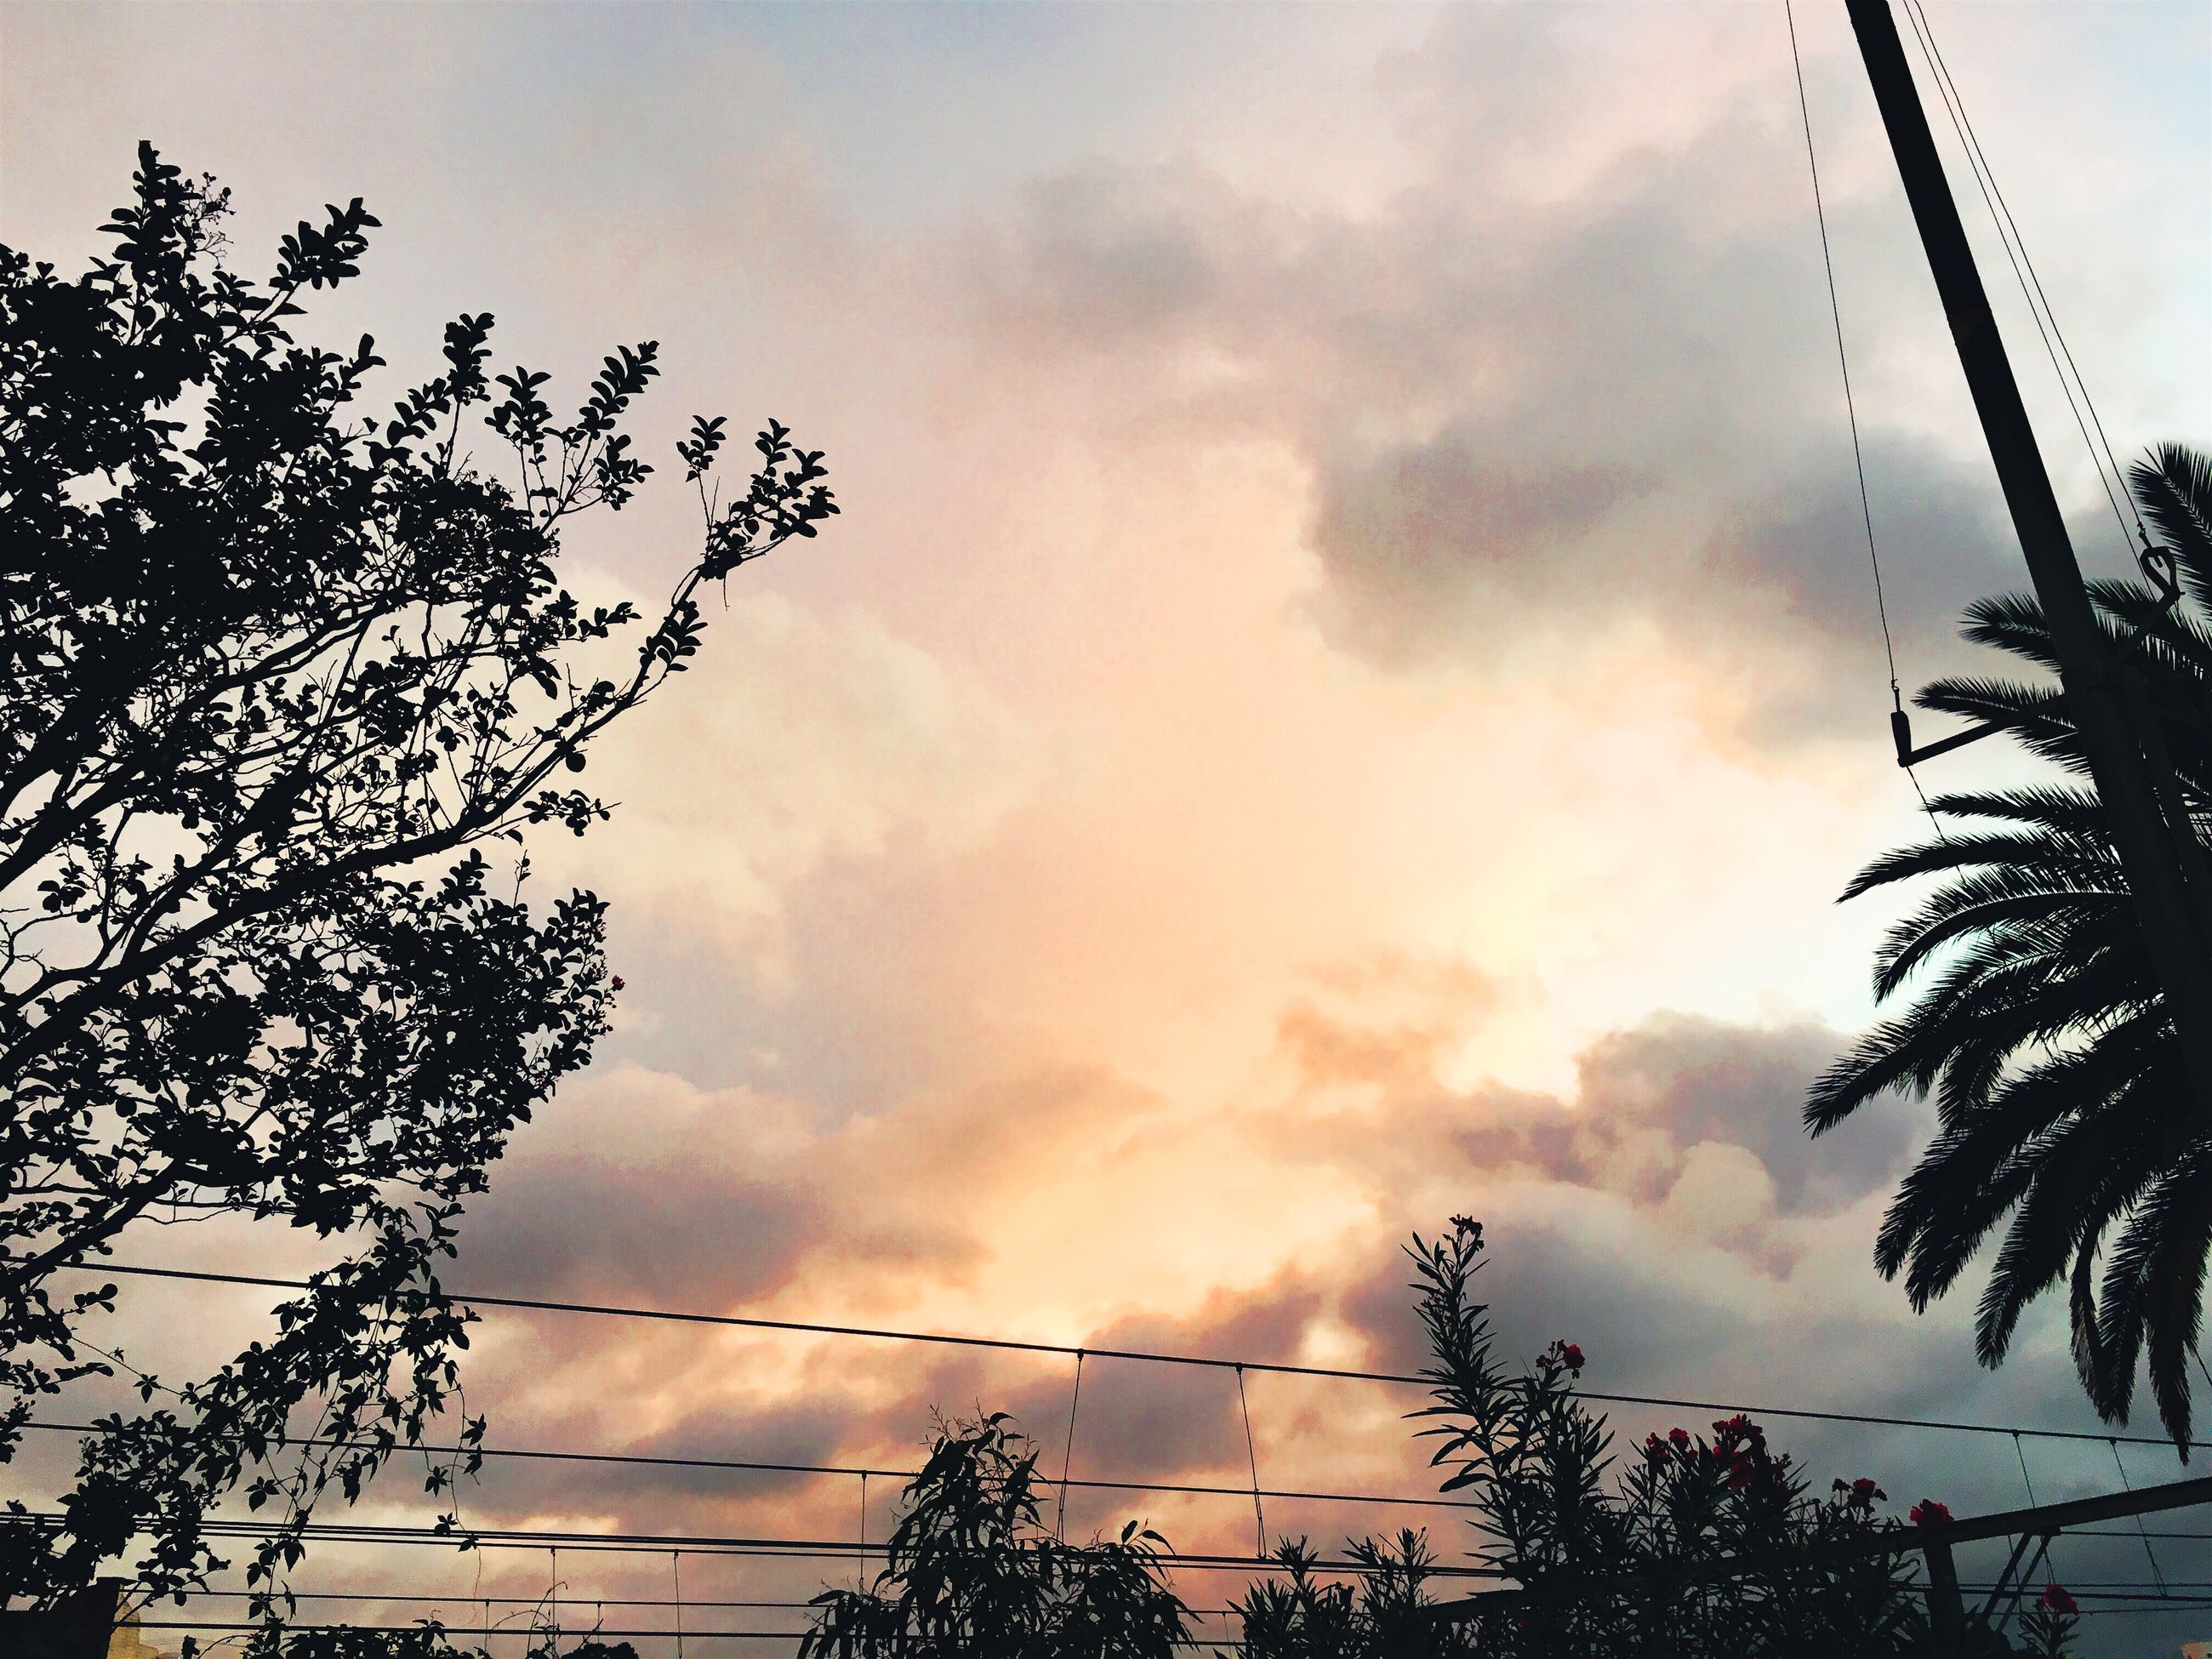 LOW ANGLE VIEW OF POWER LINES AGAINST CLOUDY SKY